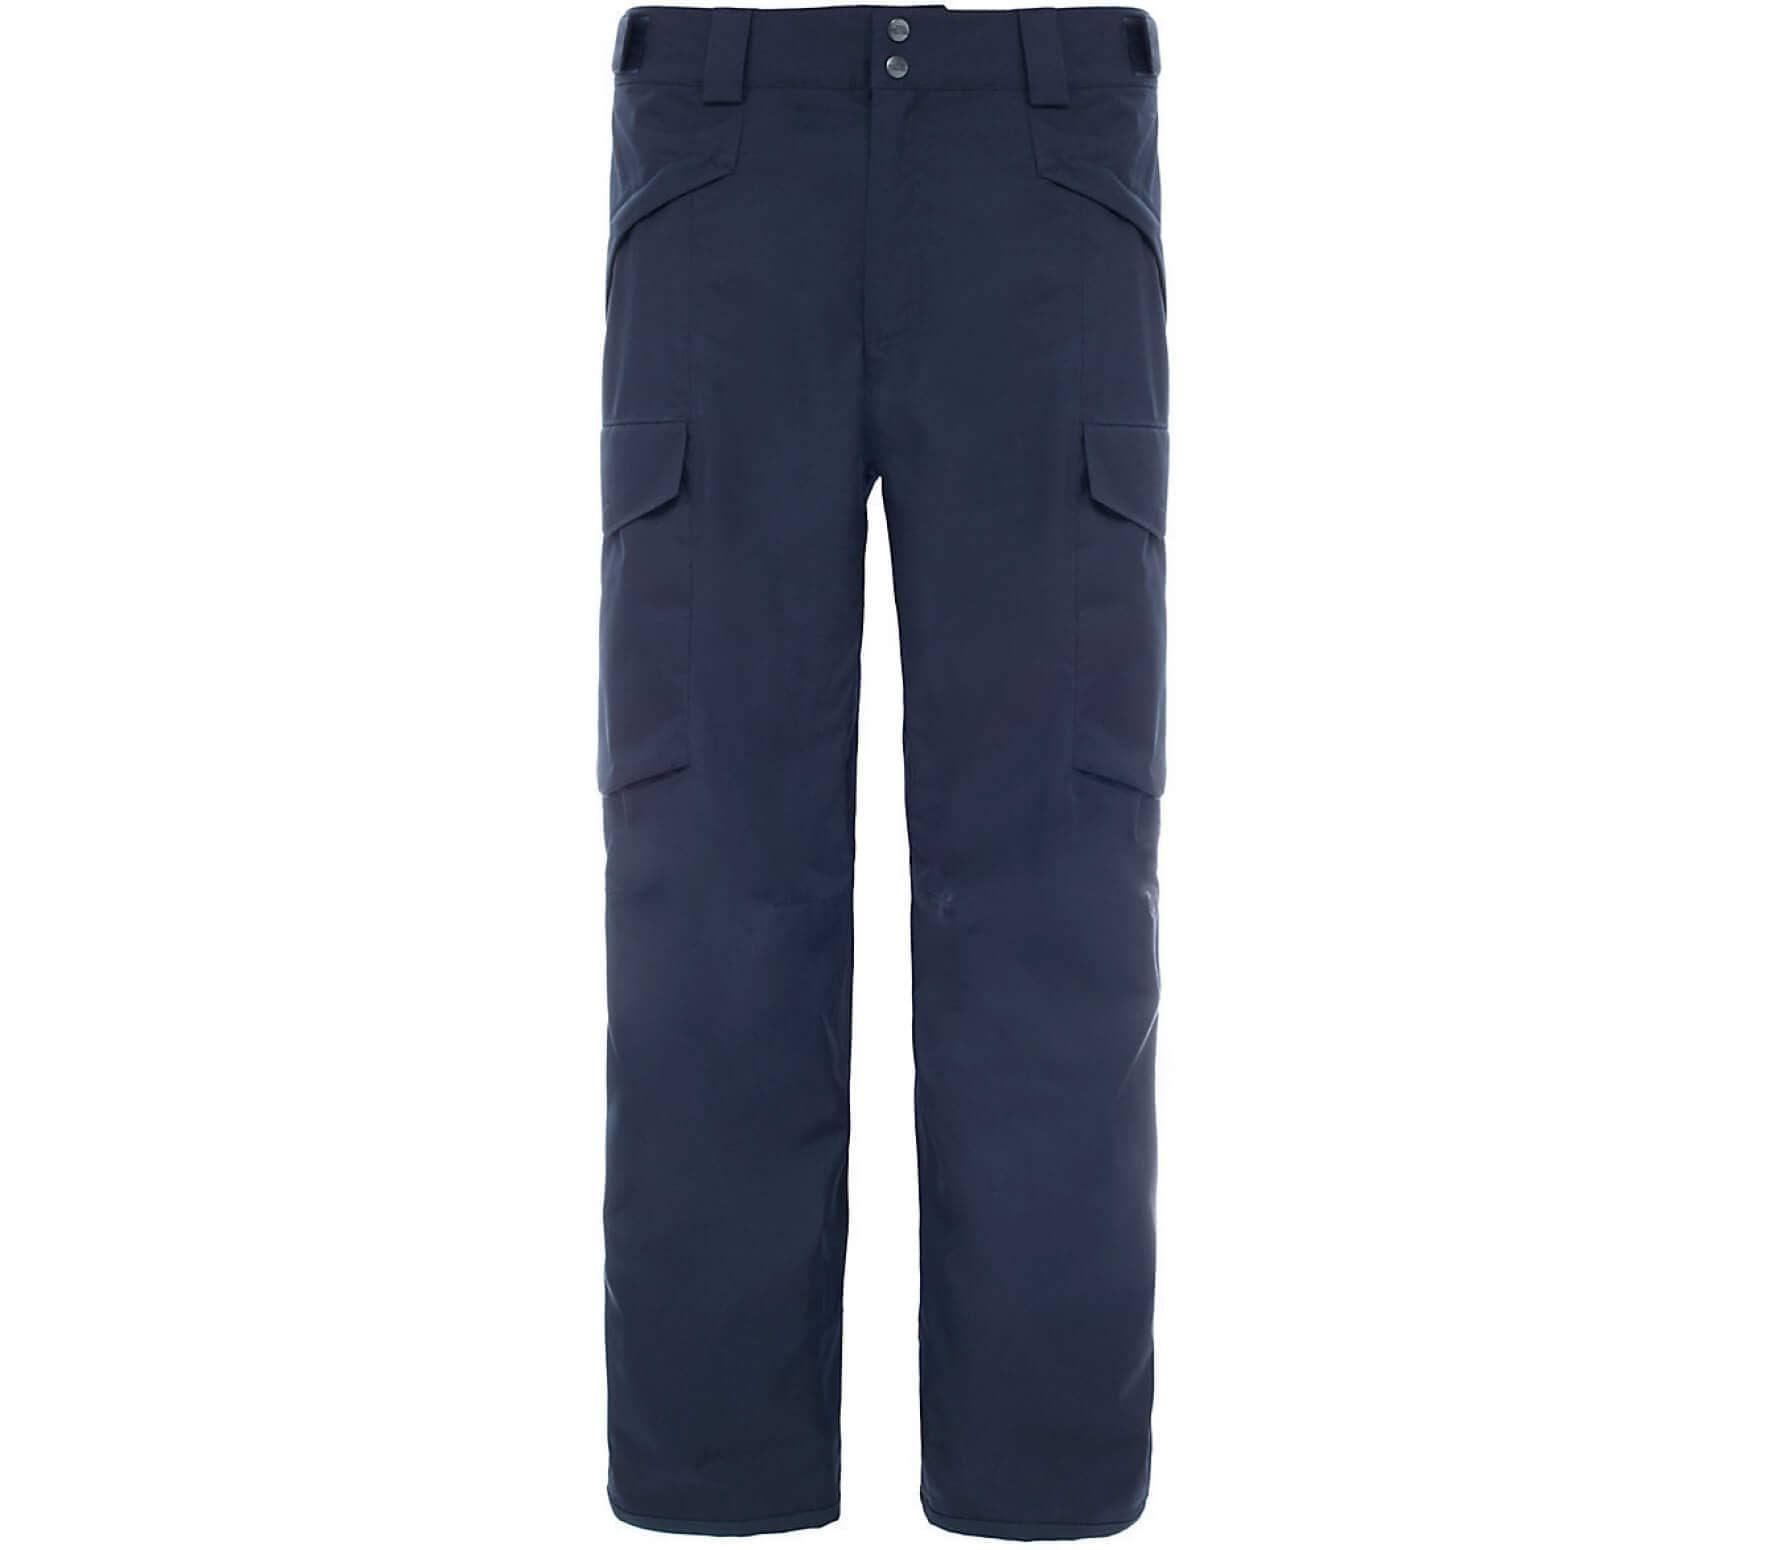 c49d7c890073 The North Face - Gatekeeper men s ski pants (dark blue) - buy it at ...